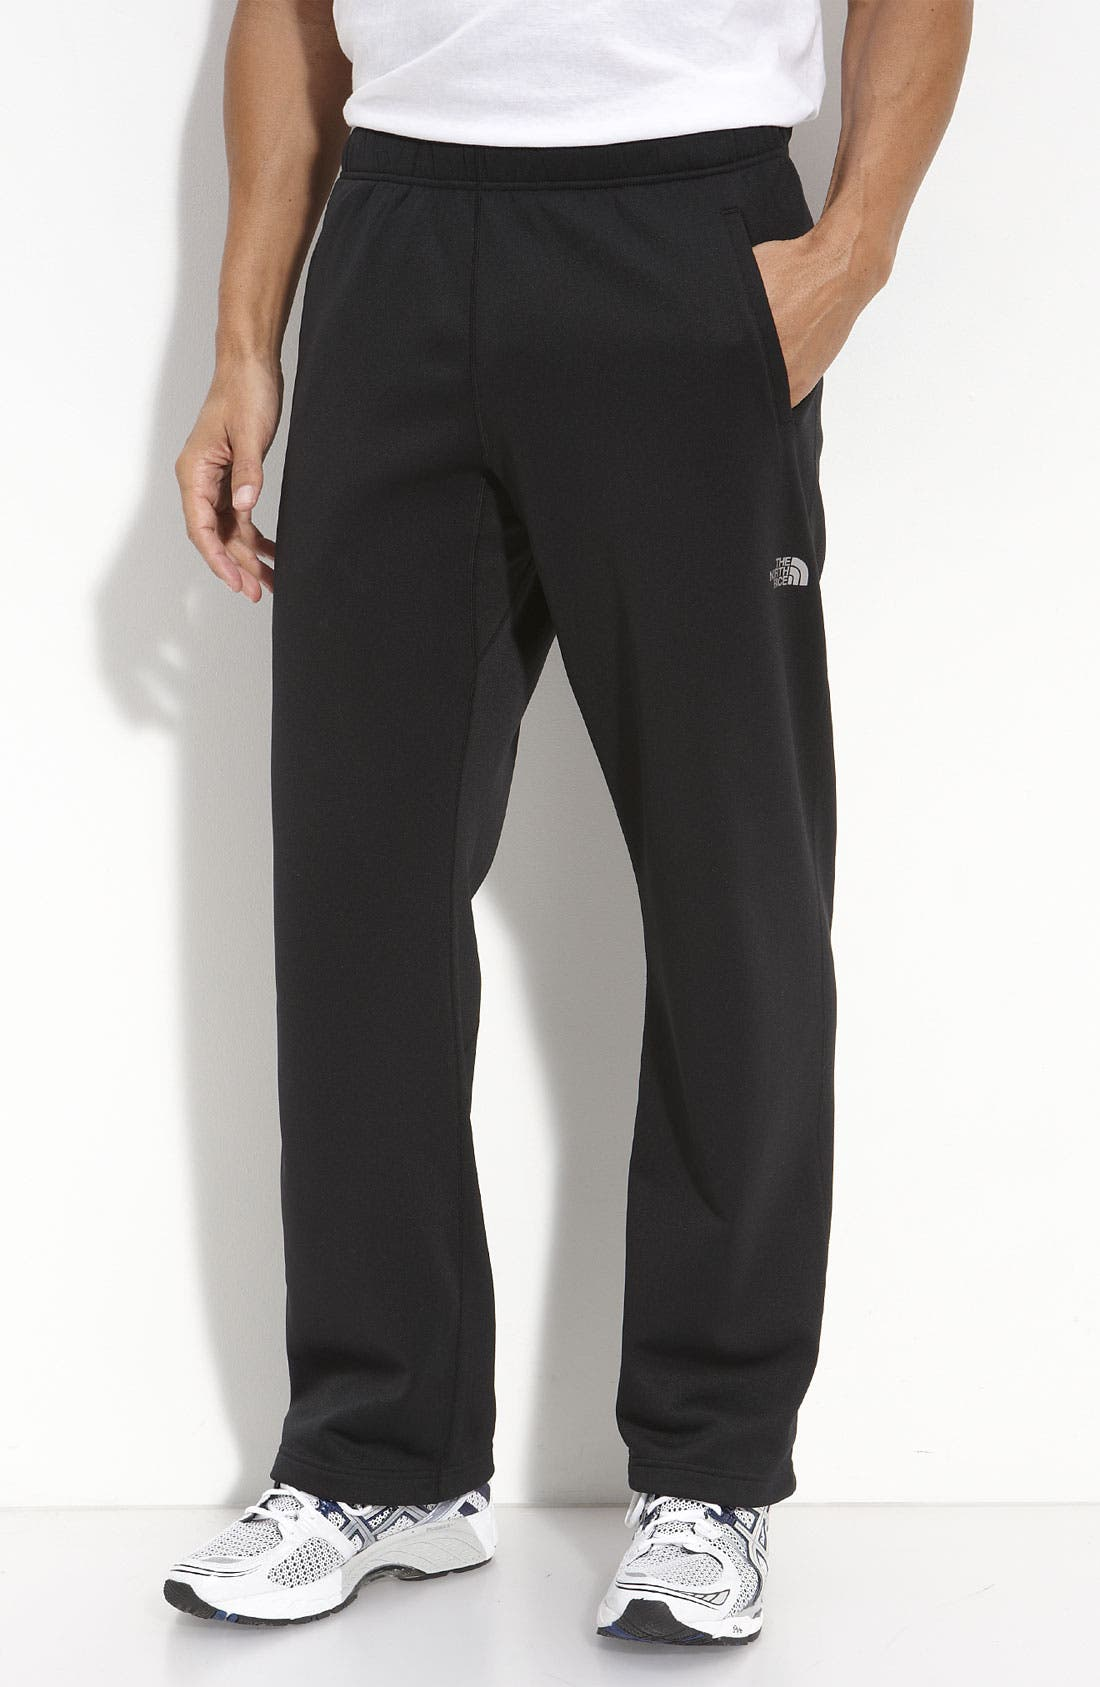 Alternate Image 1 Selected - The North Face 'Surgent' Fleece Pants